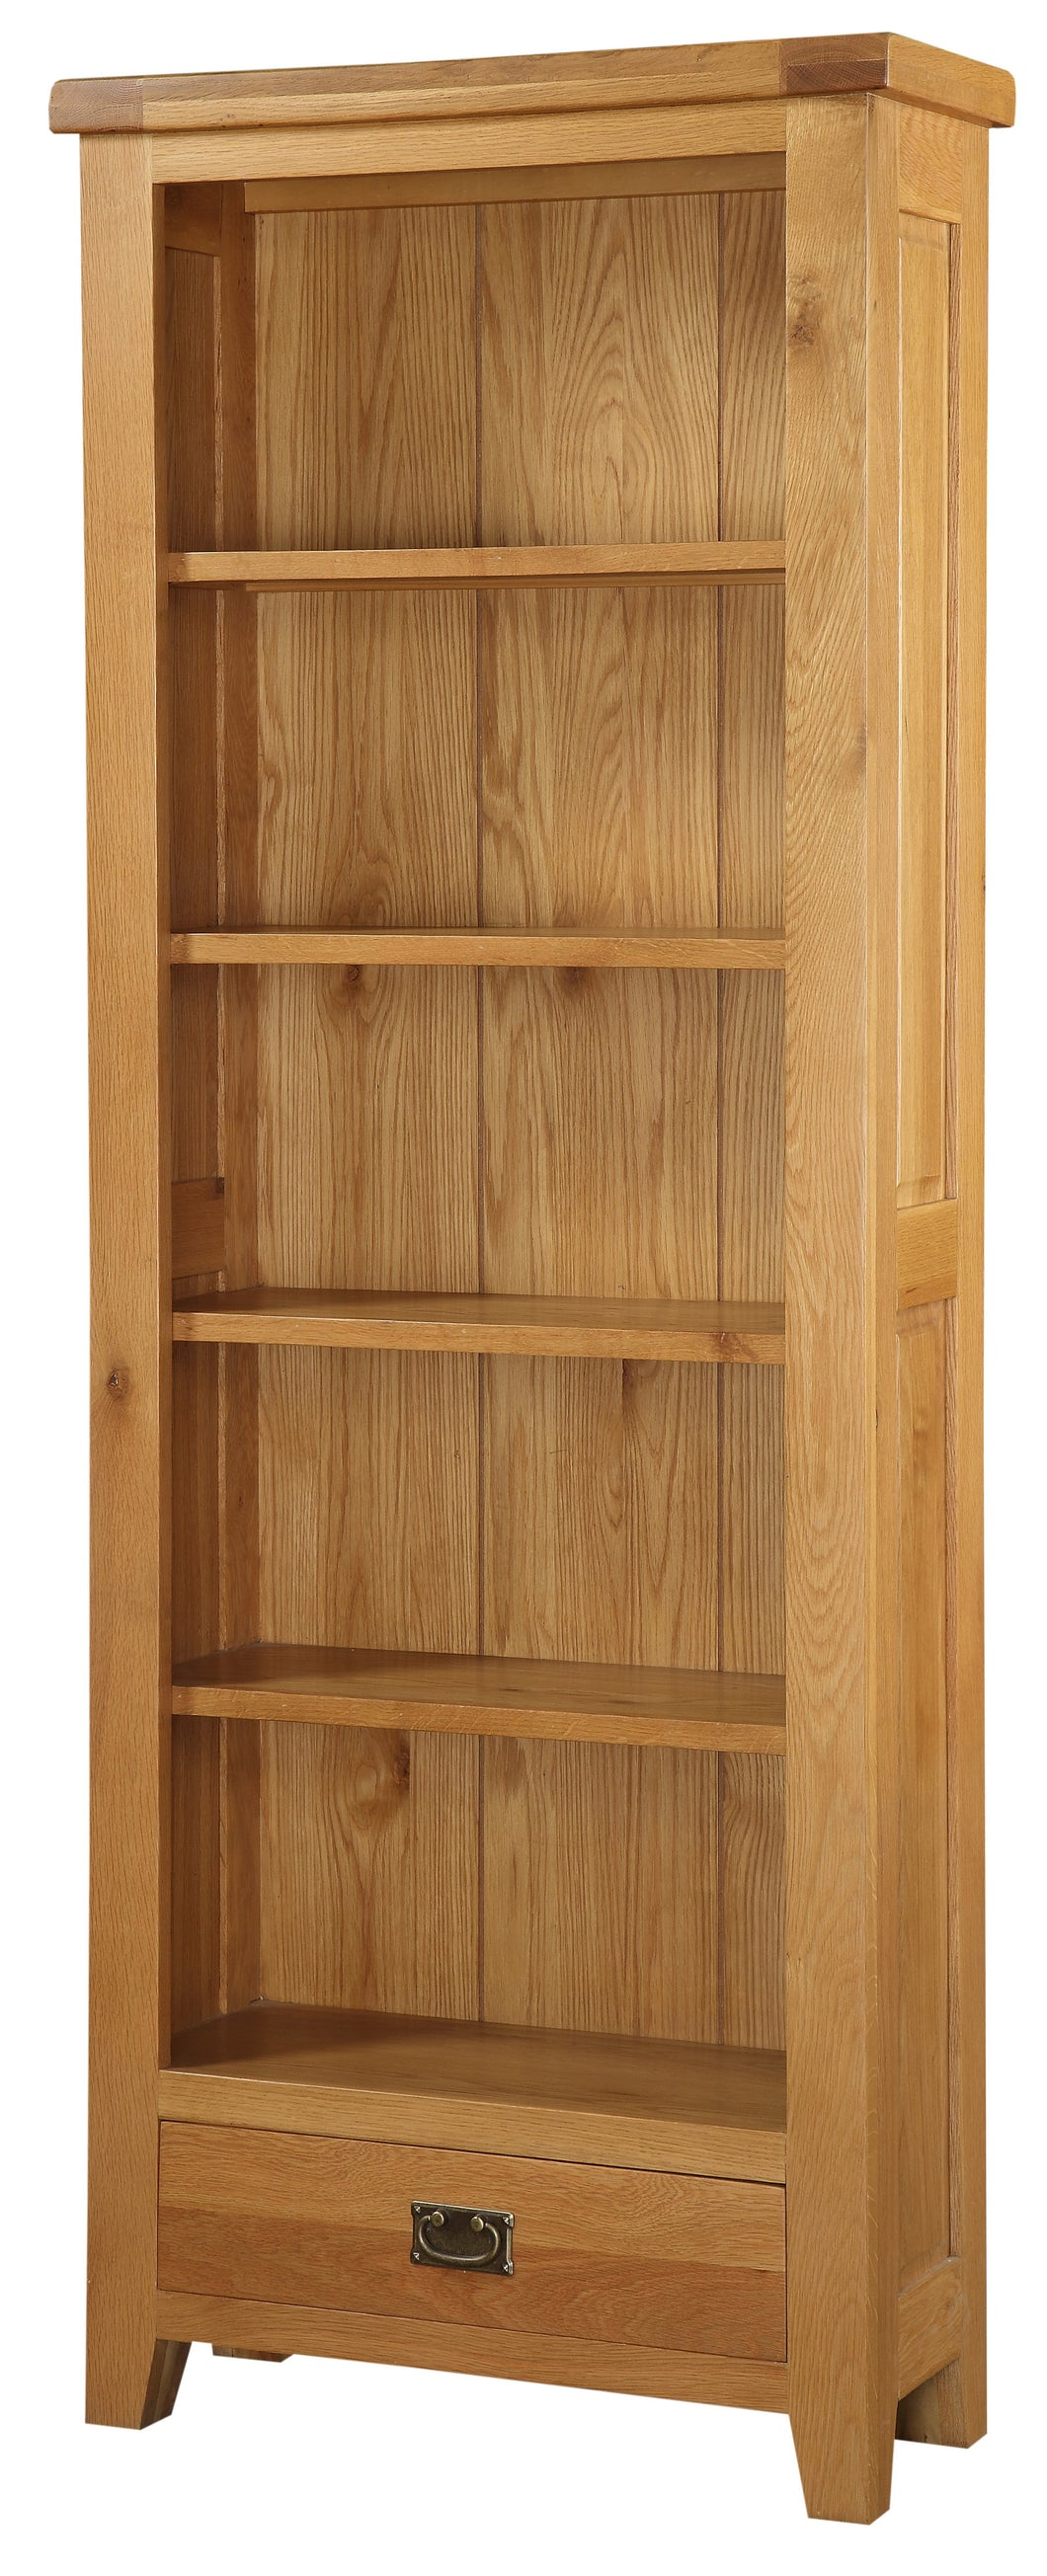 Acorn Solid Oak Bookcase Large - VEHome